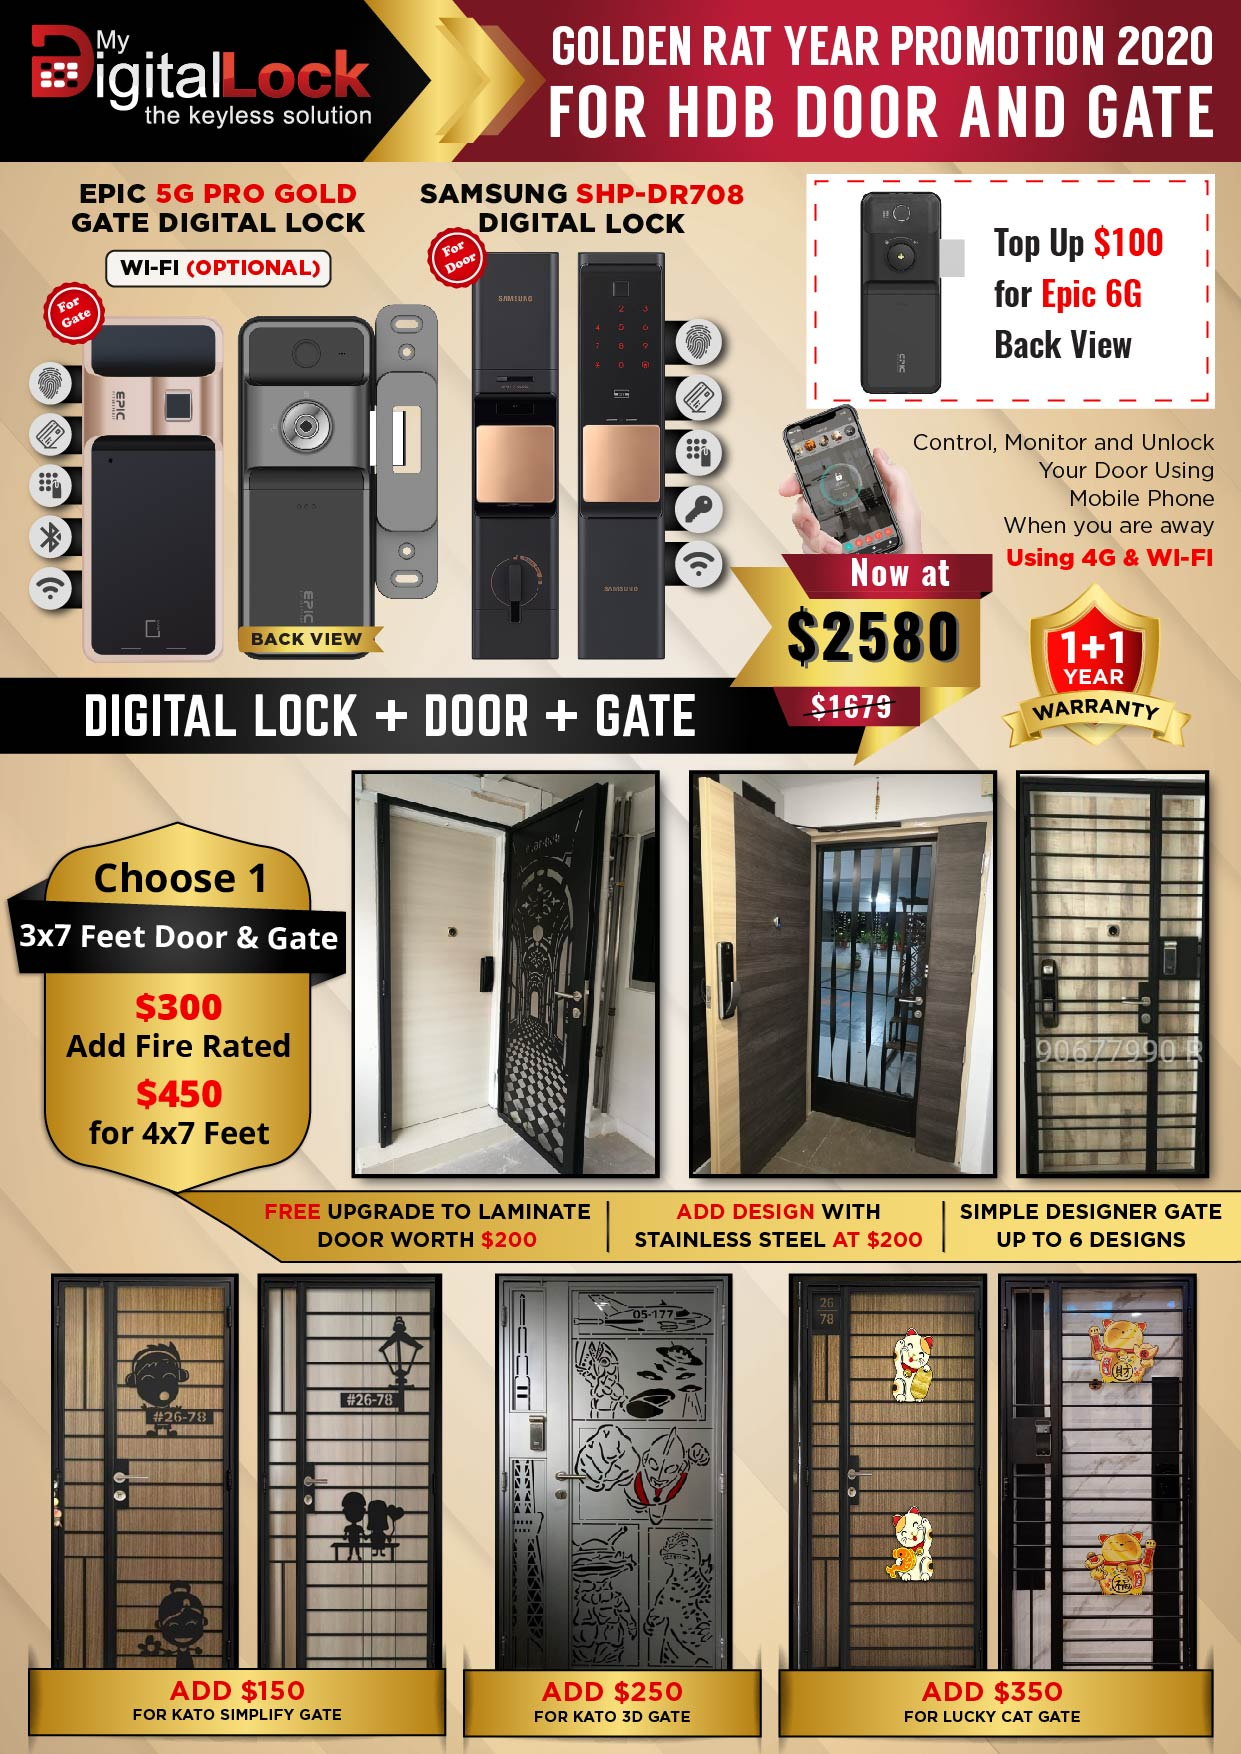 Golden Rat Year HDB Door and Gate Promotion with EPIC 5G PRO Gold and Samsung SHP-DR708 Digital Lock